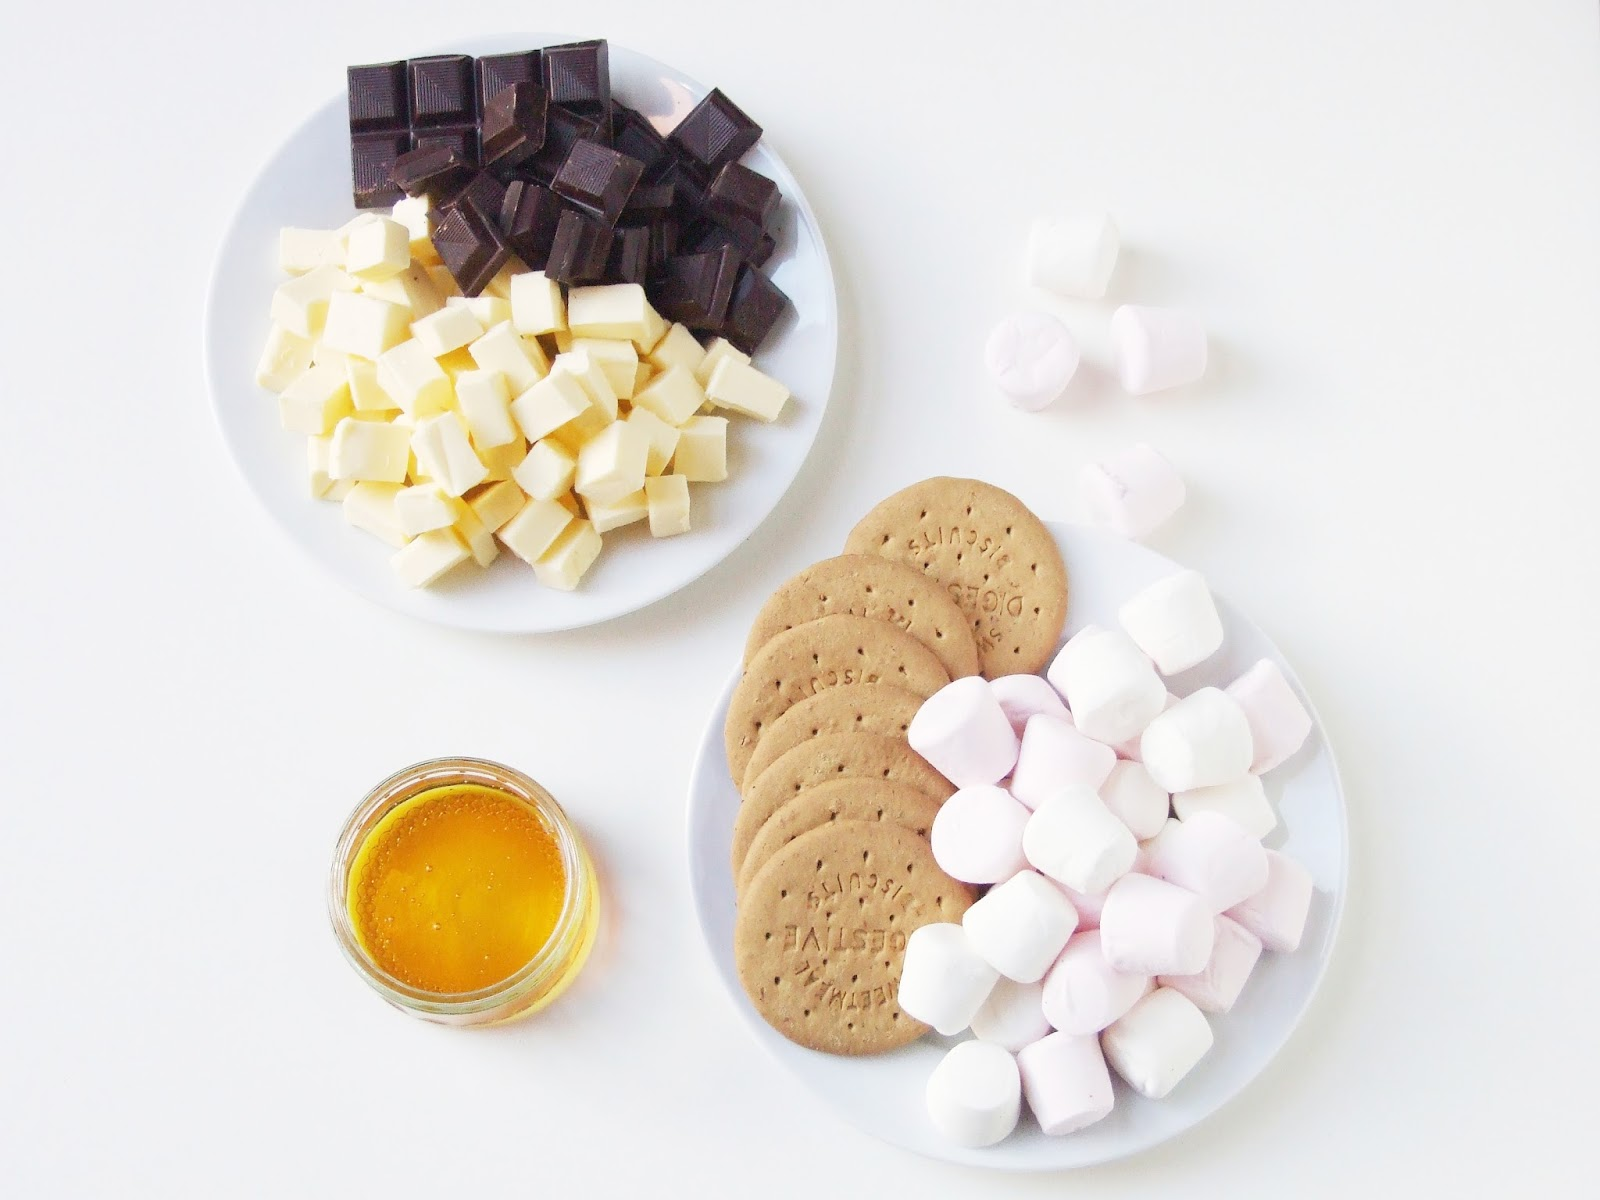 Ingredients for chunky rocky road